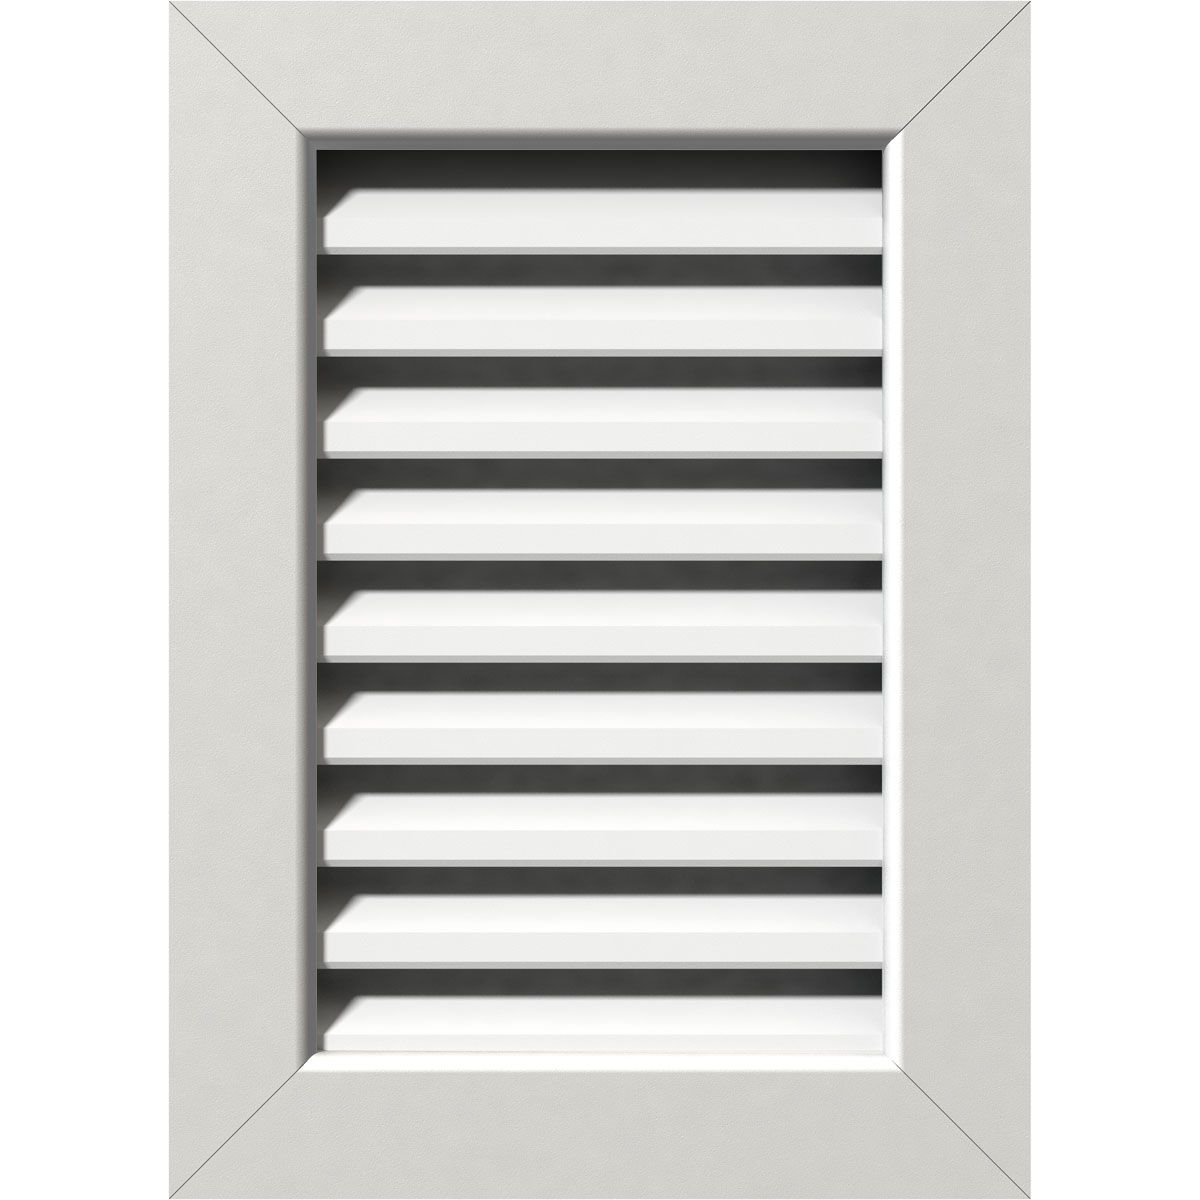 12 Inch W X 22 Inch H Vertical Gable Vent 17 Inch W X 27 Inch H Frame Size Functional Pvc Gable Vent W 1 Inch X 4 Inch Flat Trim Frame Gable Vents H Frame Frame Sizes